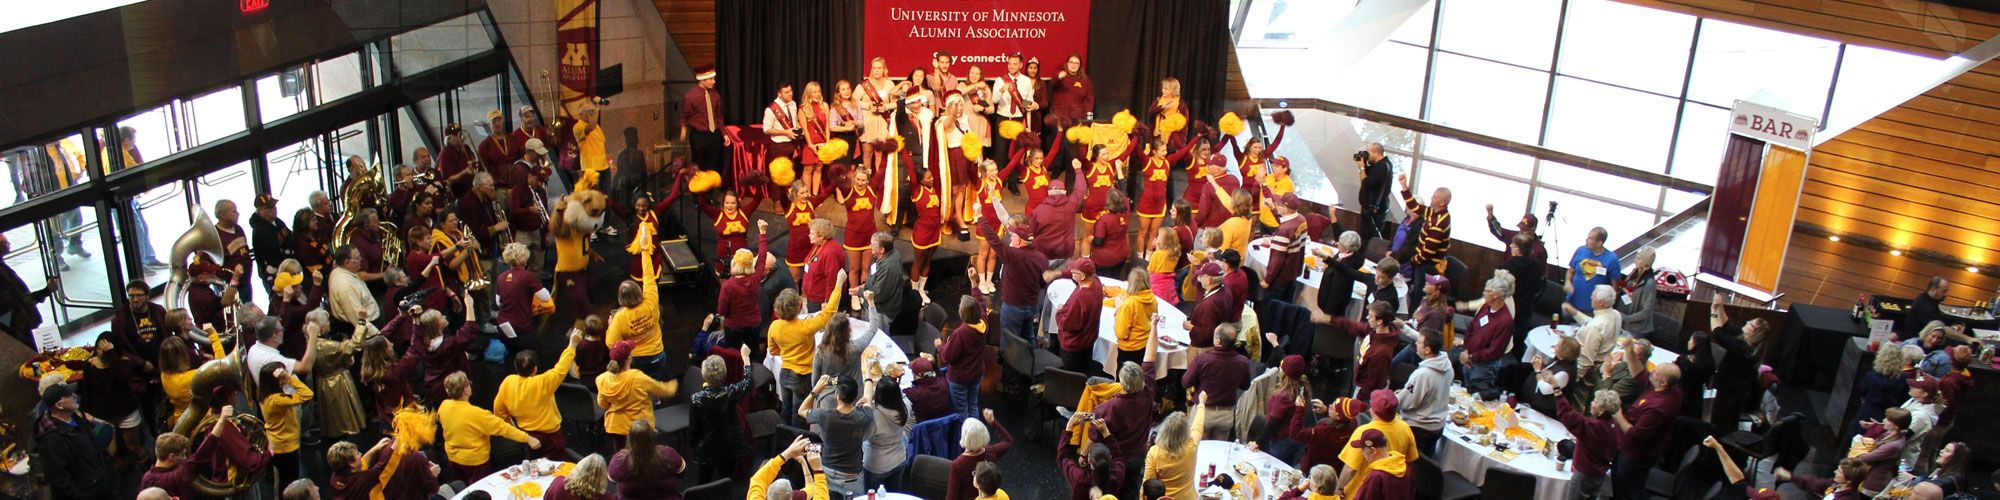 pregame party inside McNamara Alumni Center